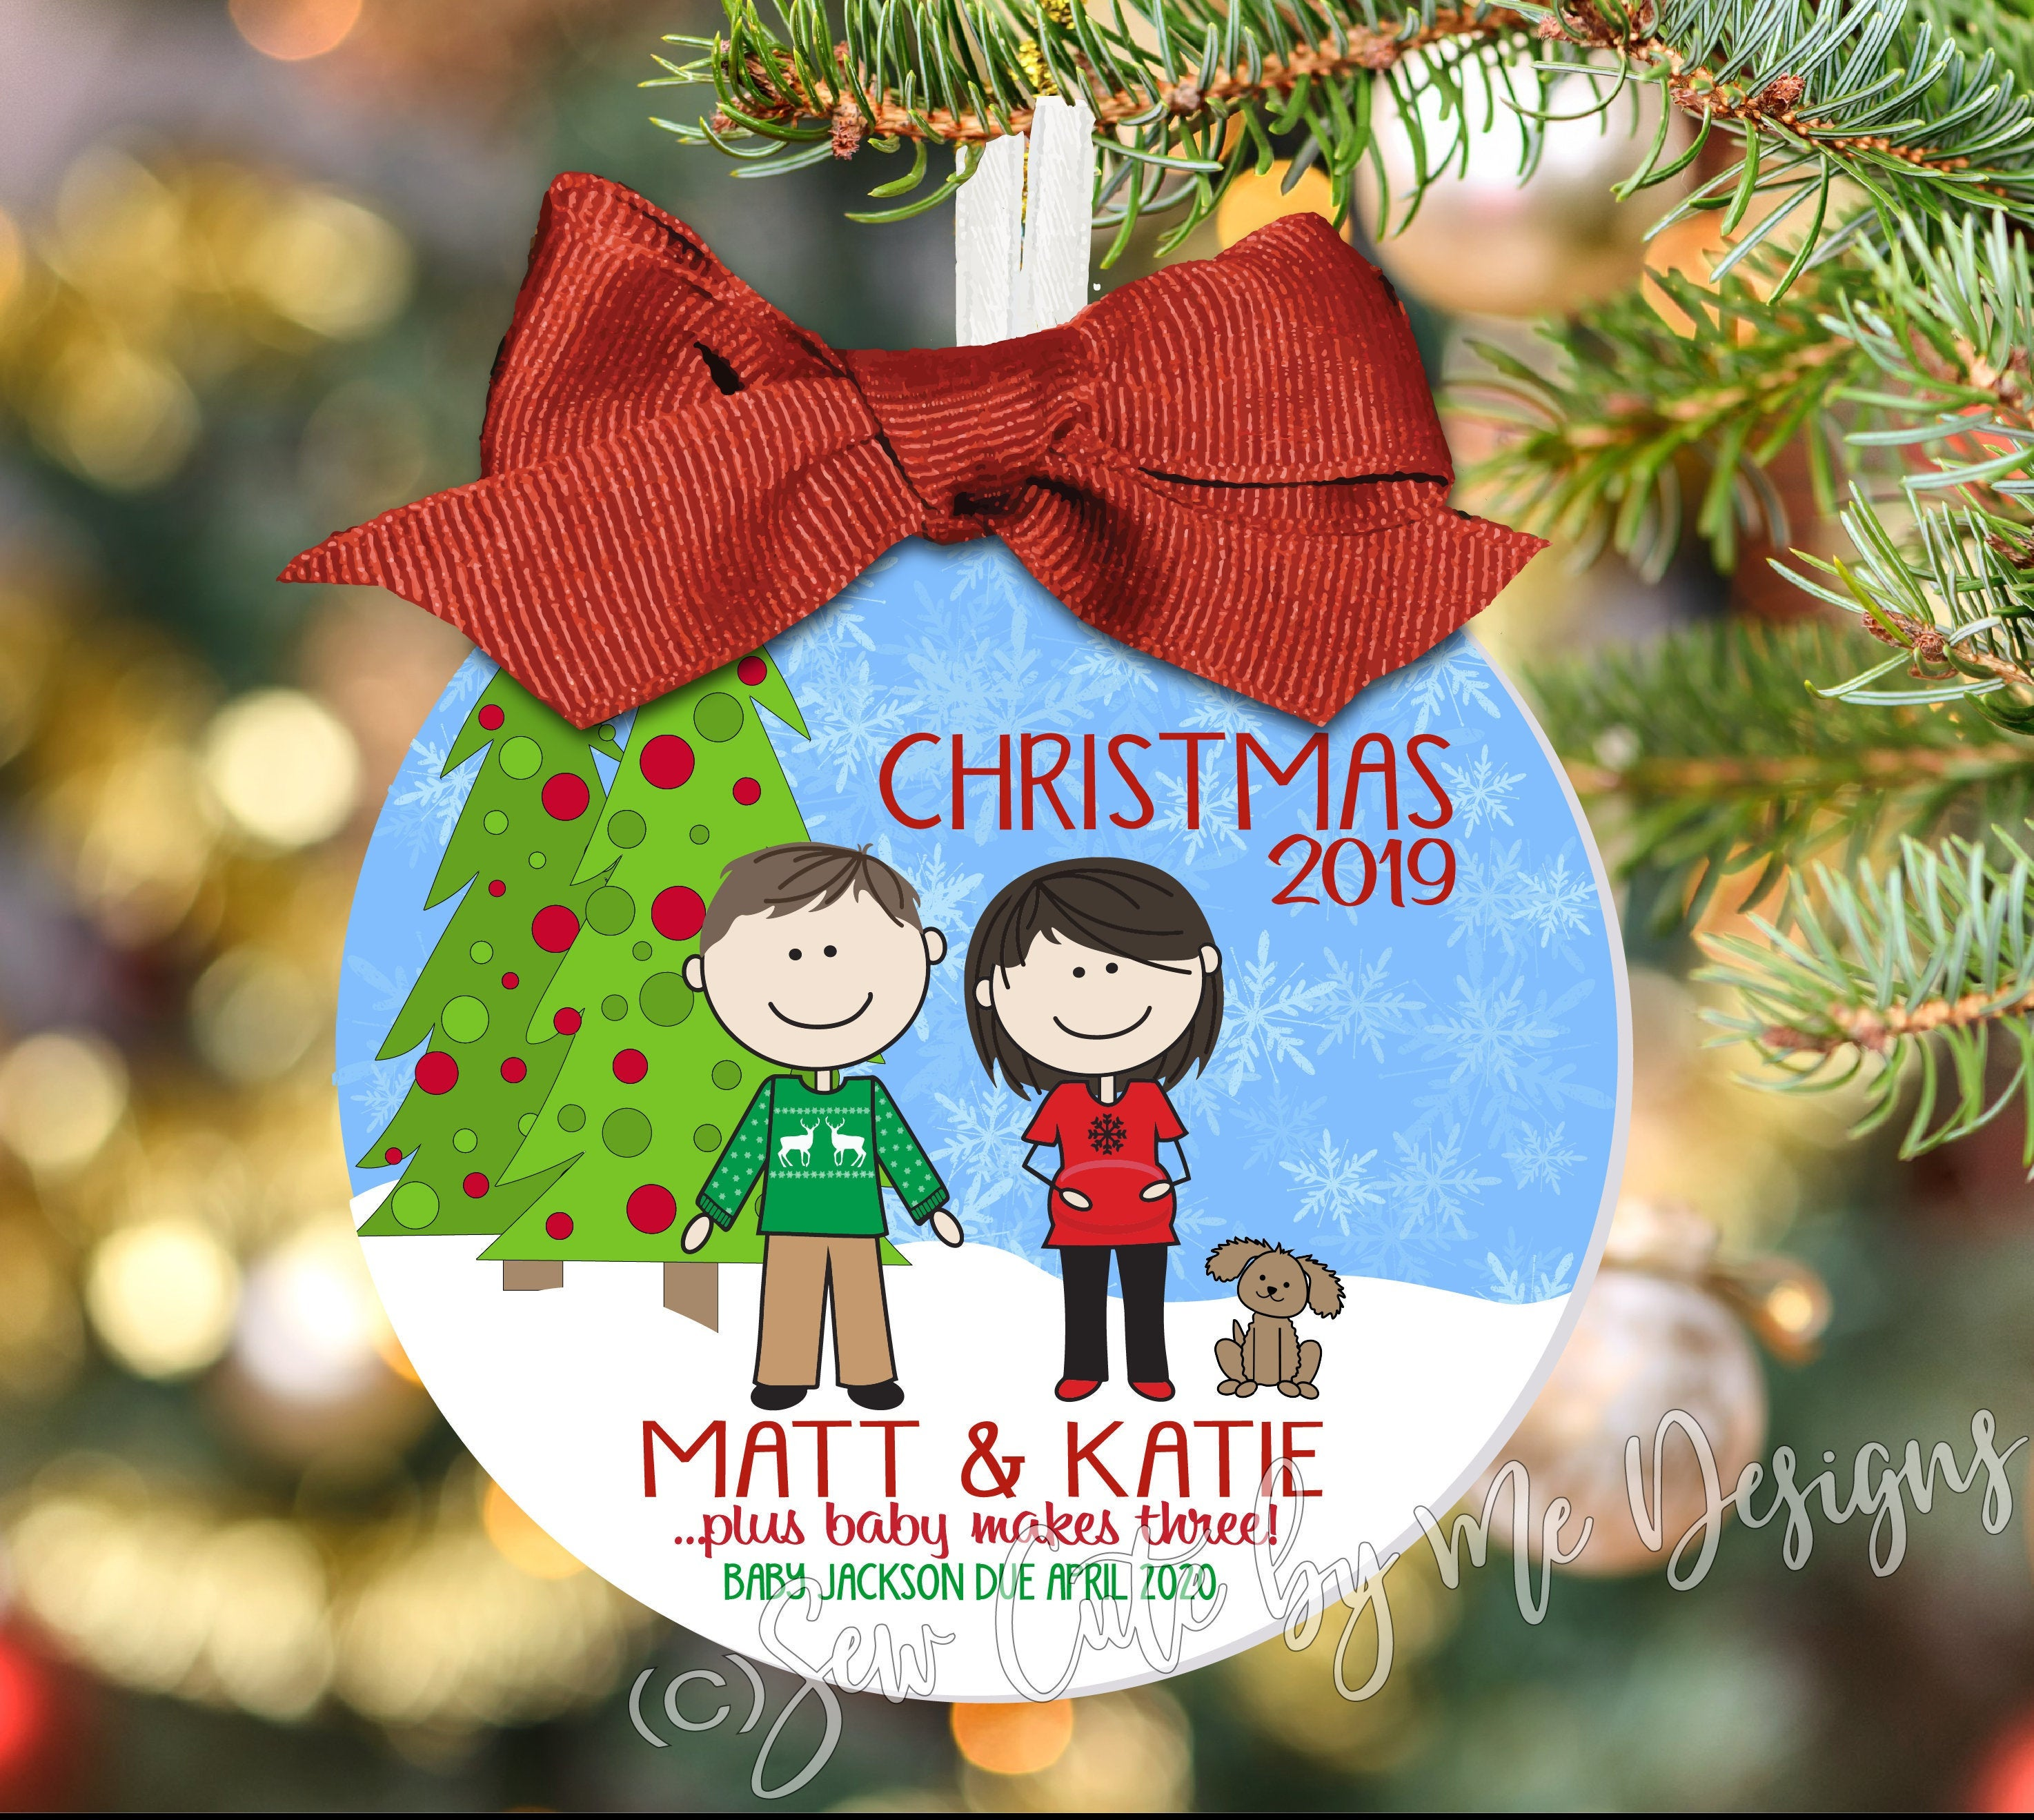 We're Expecting Family Portrait Christmas Ornament Personalized with Characters, Names and Year